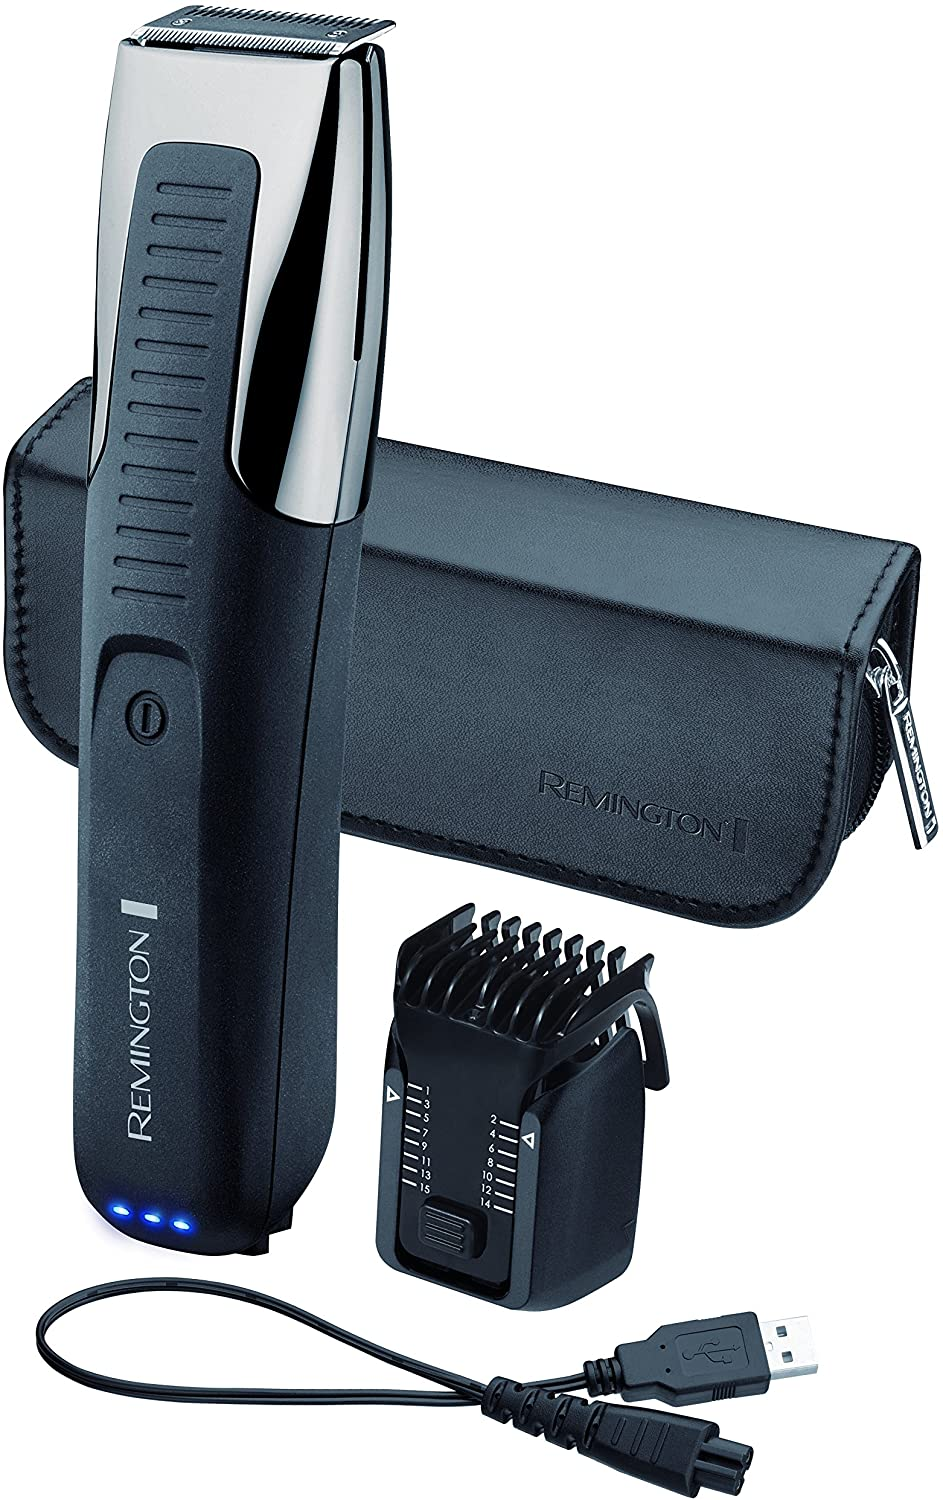 Endurance Groomer MB4200 | Remington